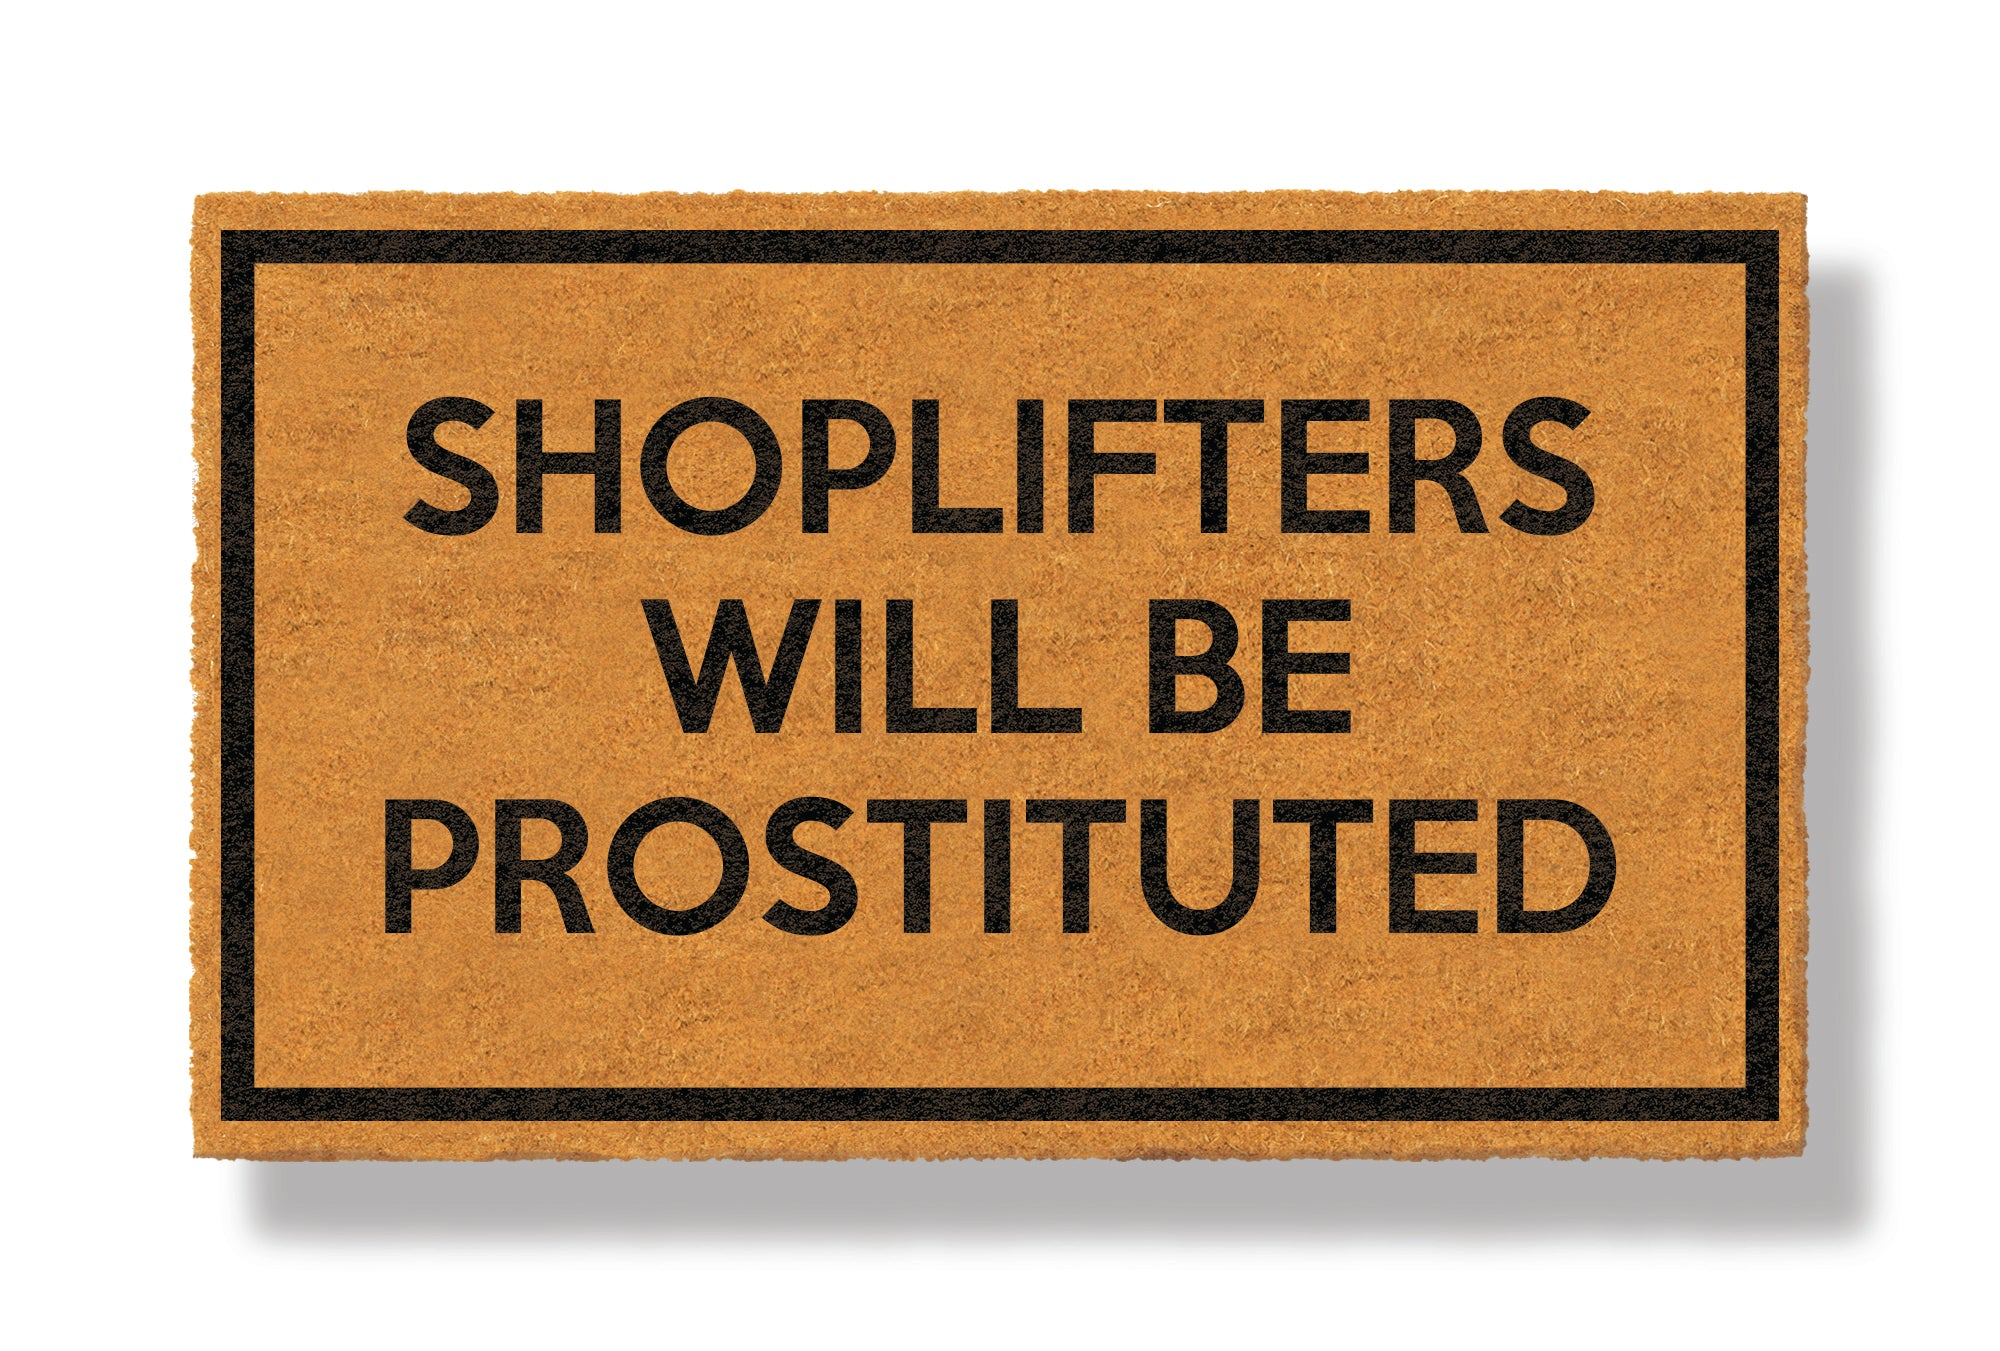 This coir welcome mat is a funny doormat on a white background with a drop shadow. The brown doormat has a black border and has black centered text that reads Shoplifters Will Be Prostituted.